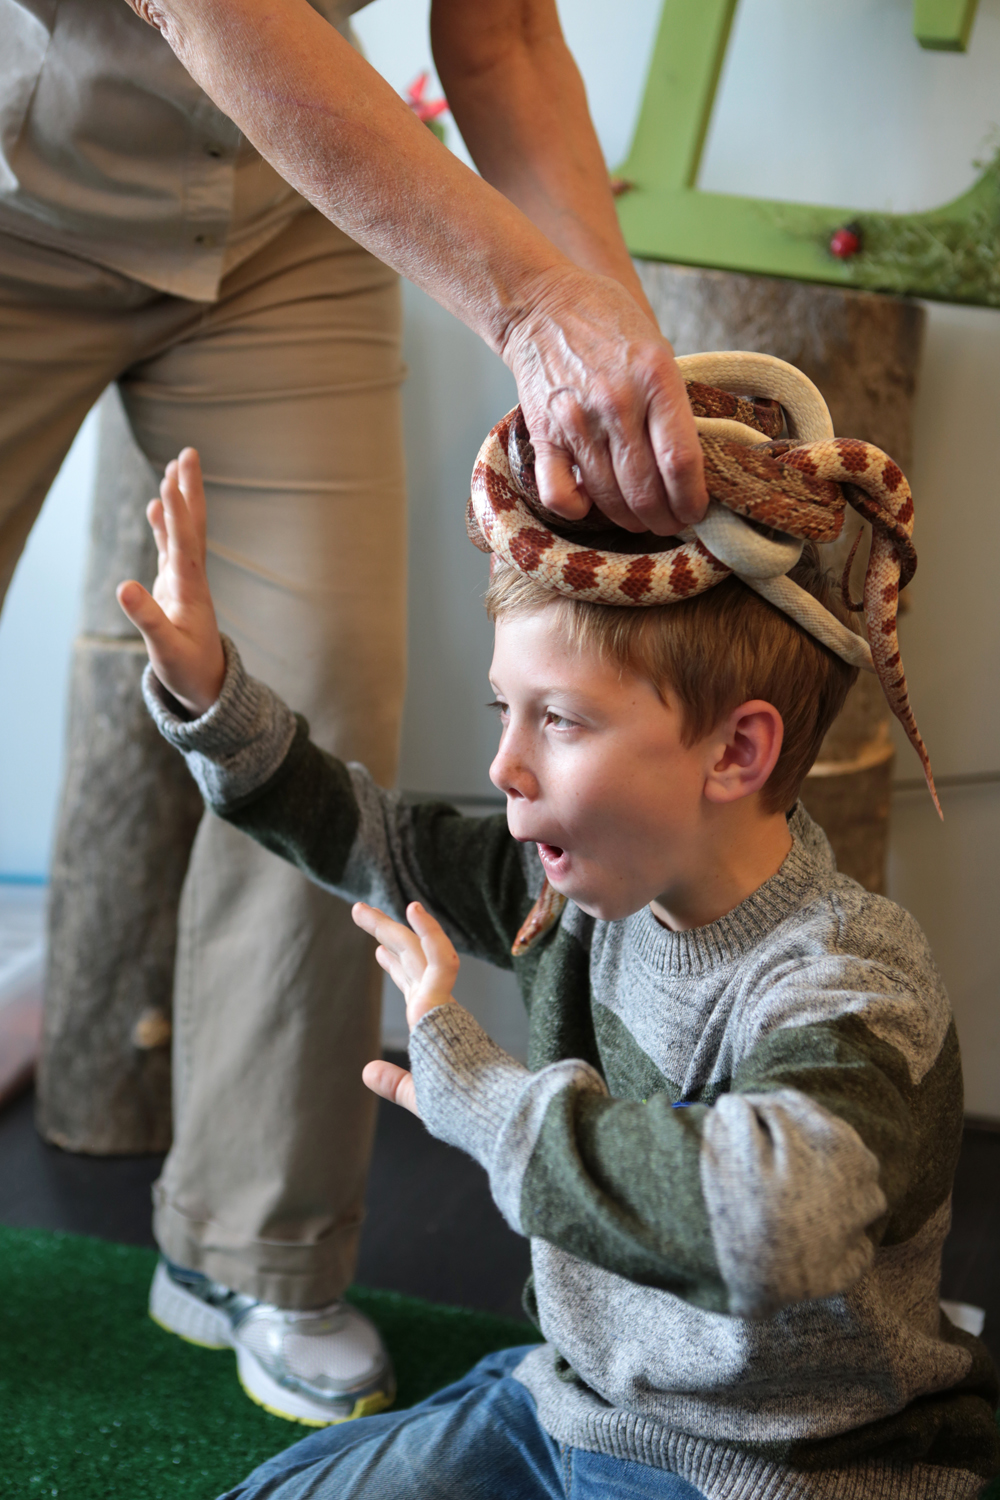 tarynco-events-bug-themed-kids-birthday-party-bugshow-snakes.jpg